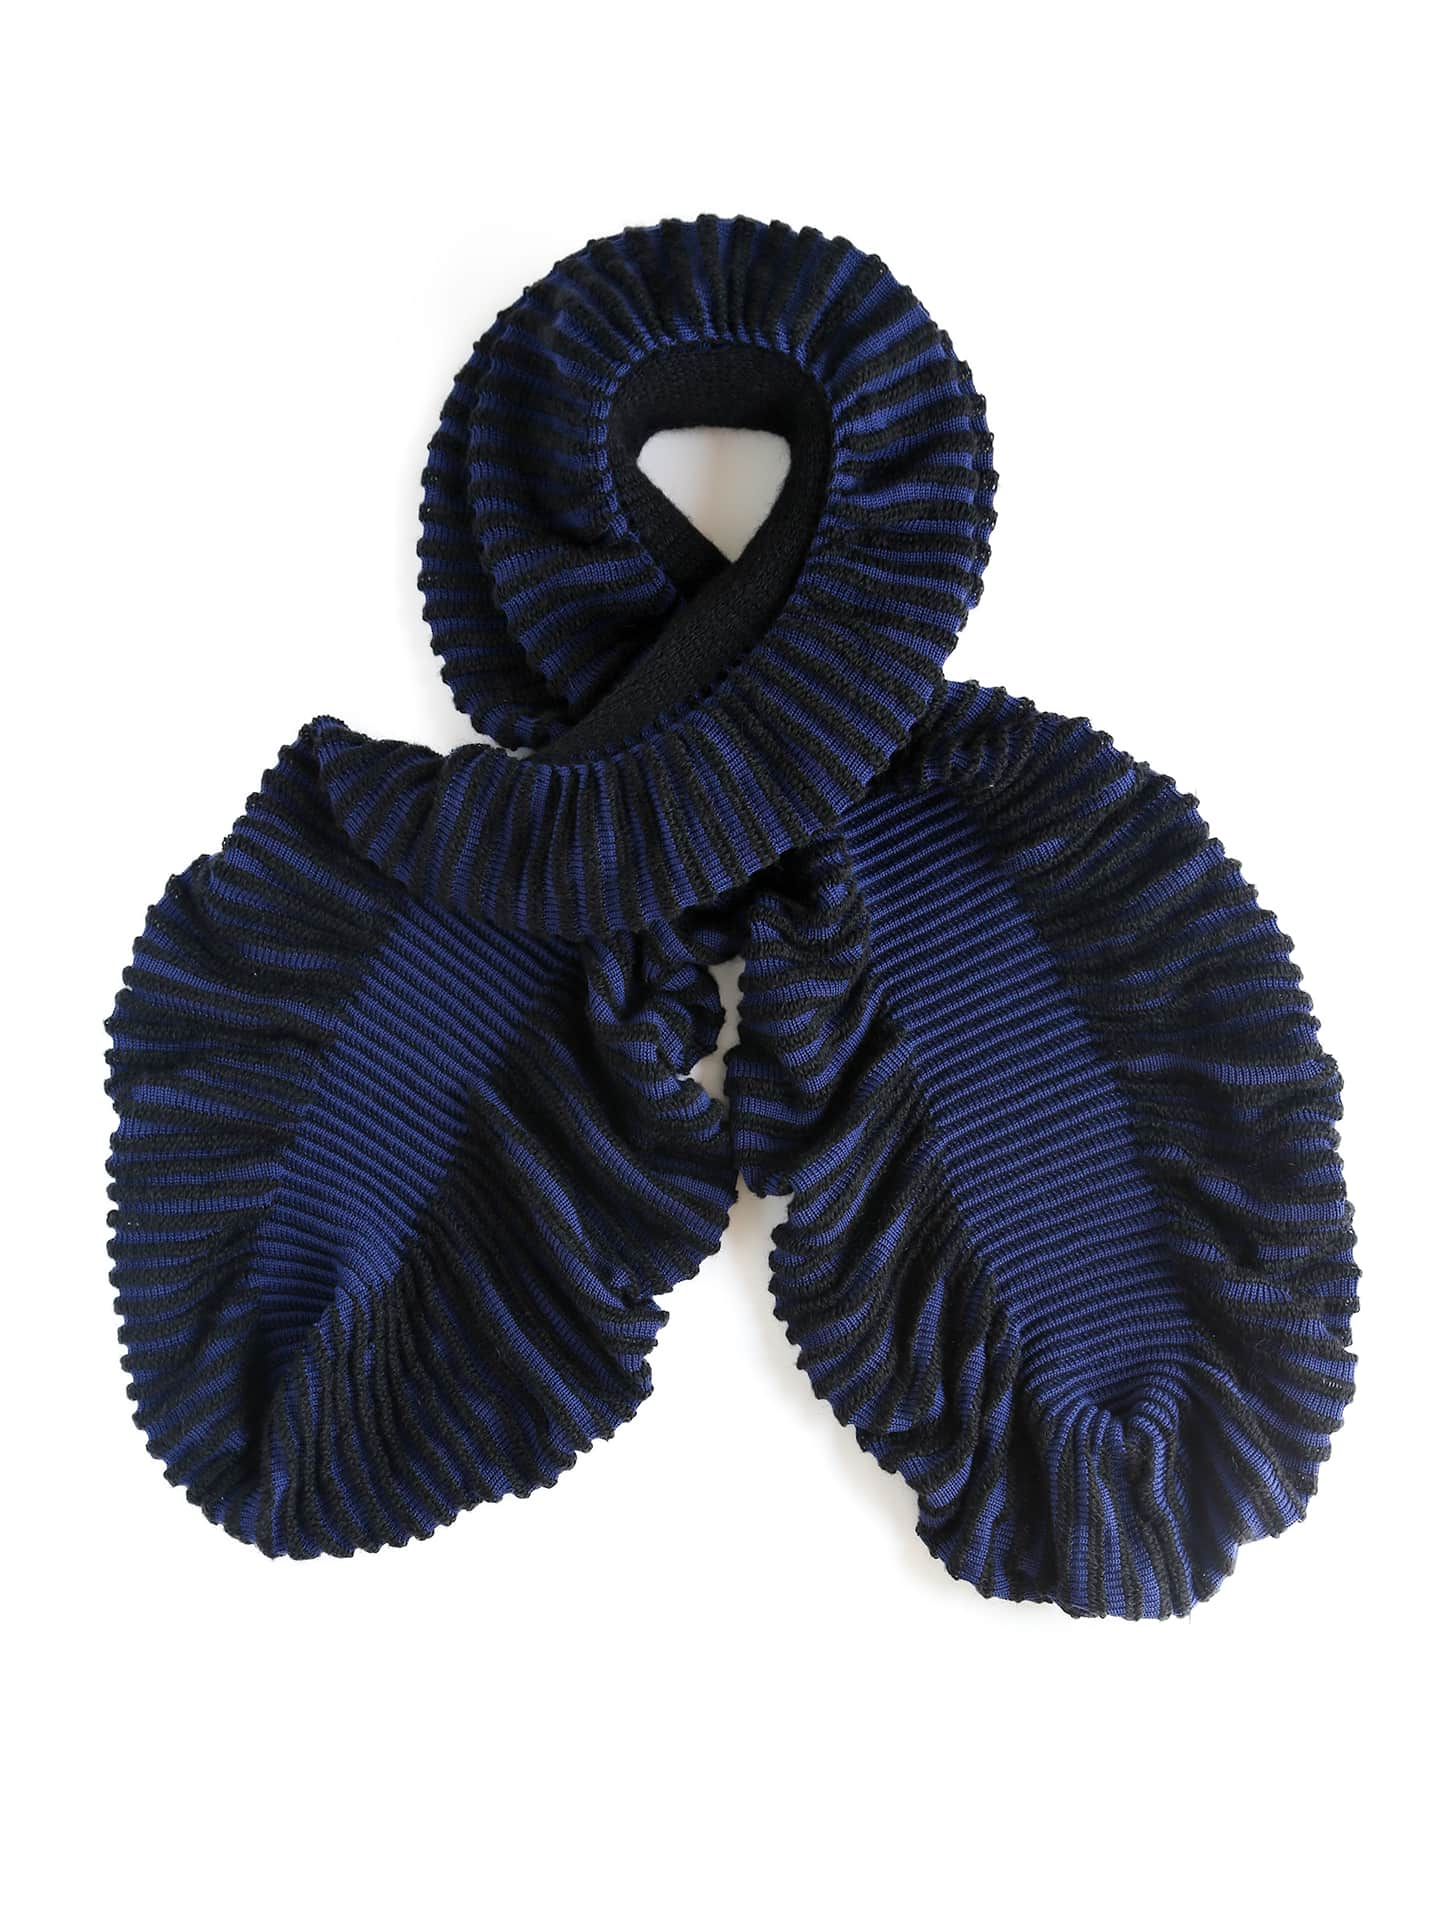 Cauliflower Scarf - Blue & Black